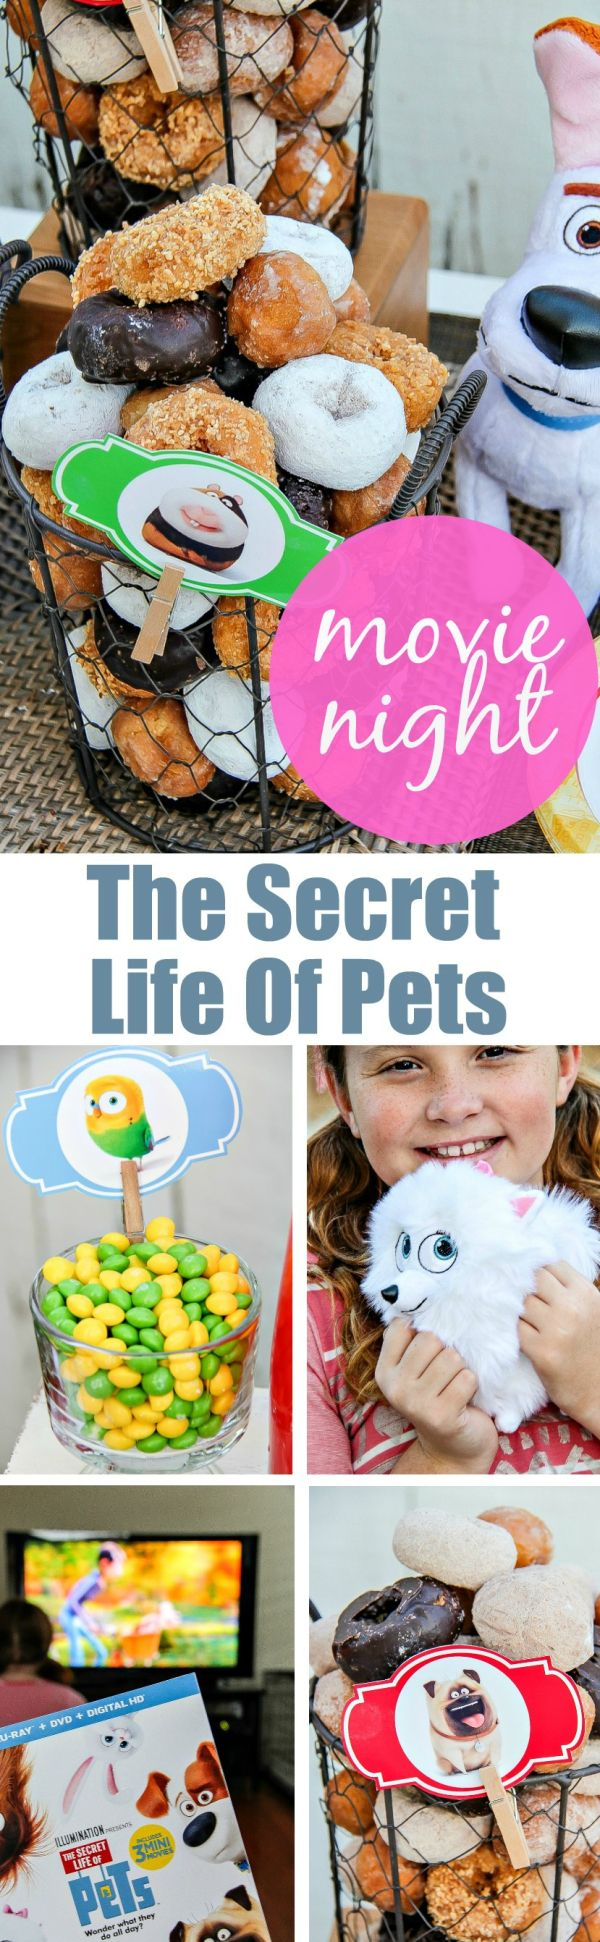 How To Plan A Family Movie Night Inspired By The Secret Life Of Pets (now